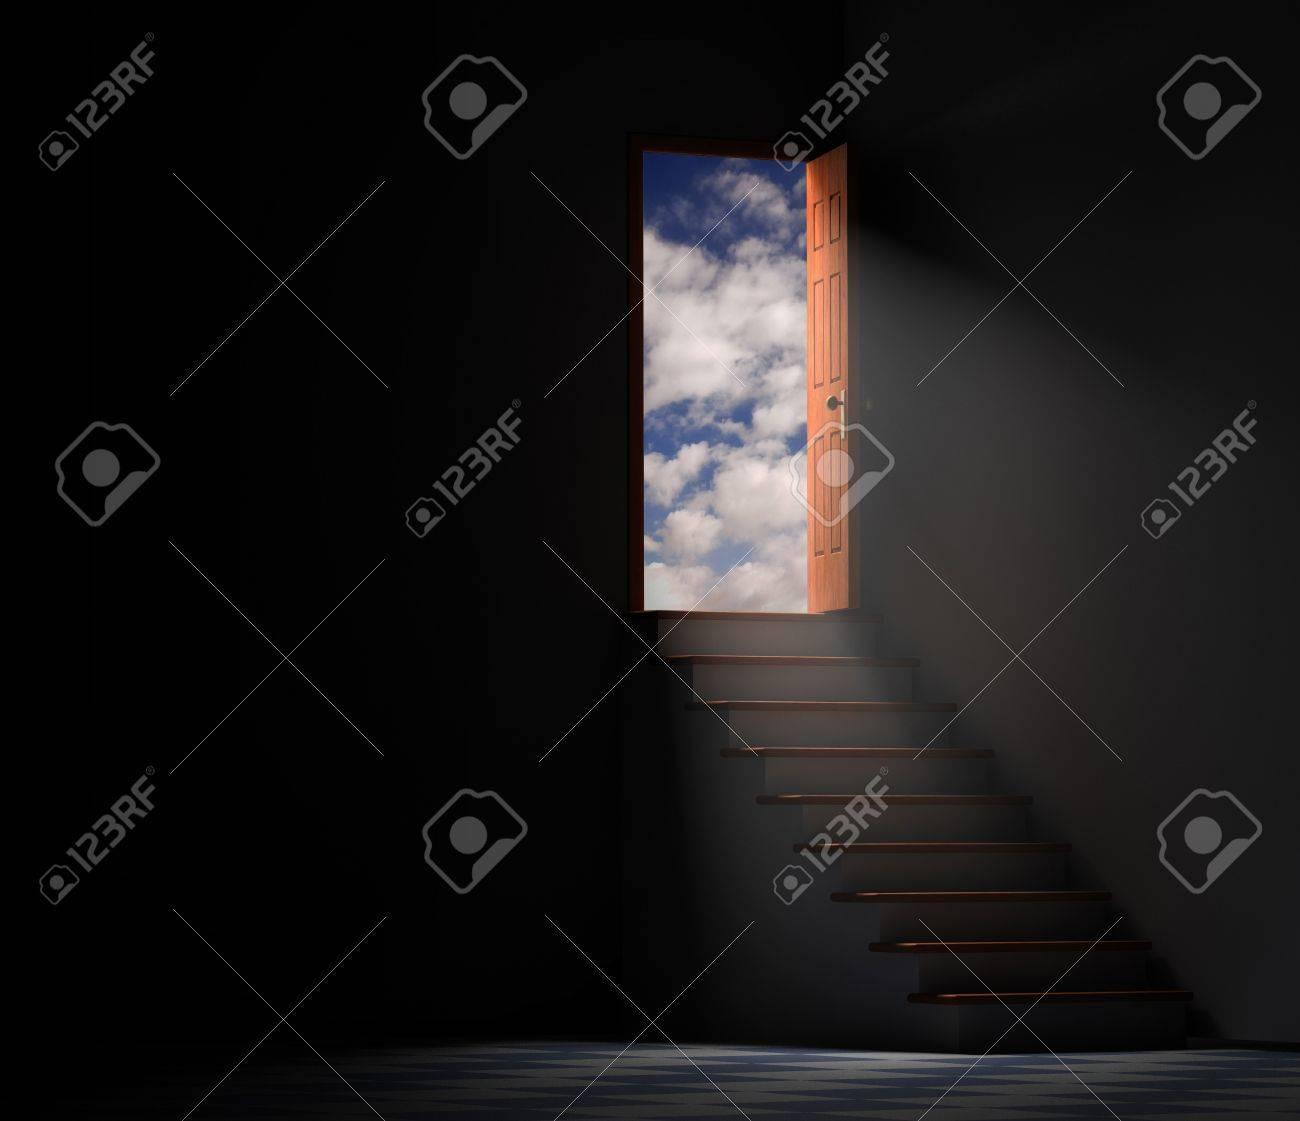 dark basement stairs. Stairway From A Dark Basement Leading To The Outside With Clouds And Blue Sky Stock Photo Stairs